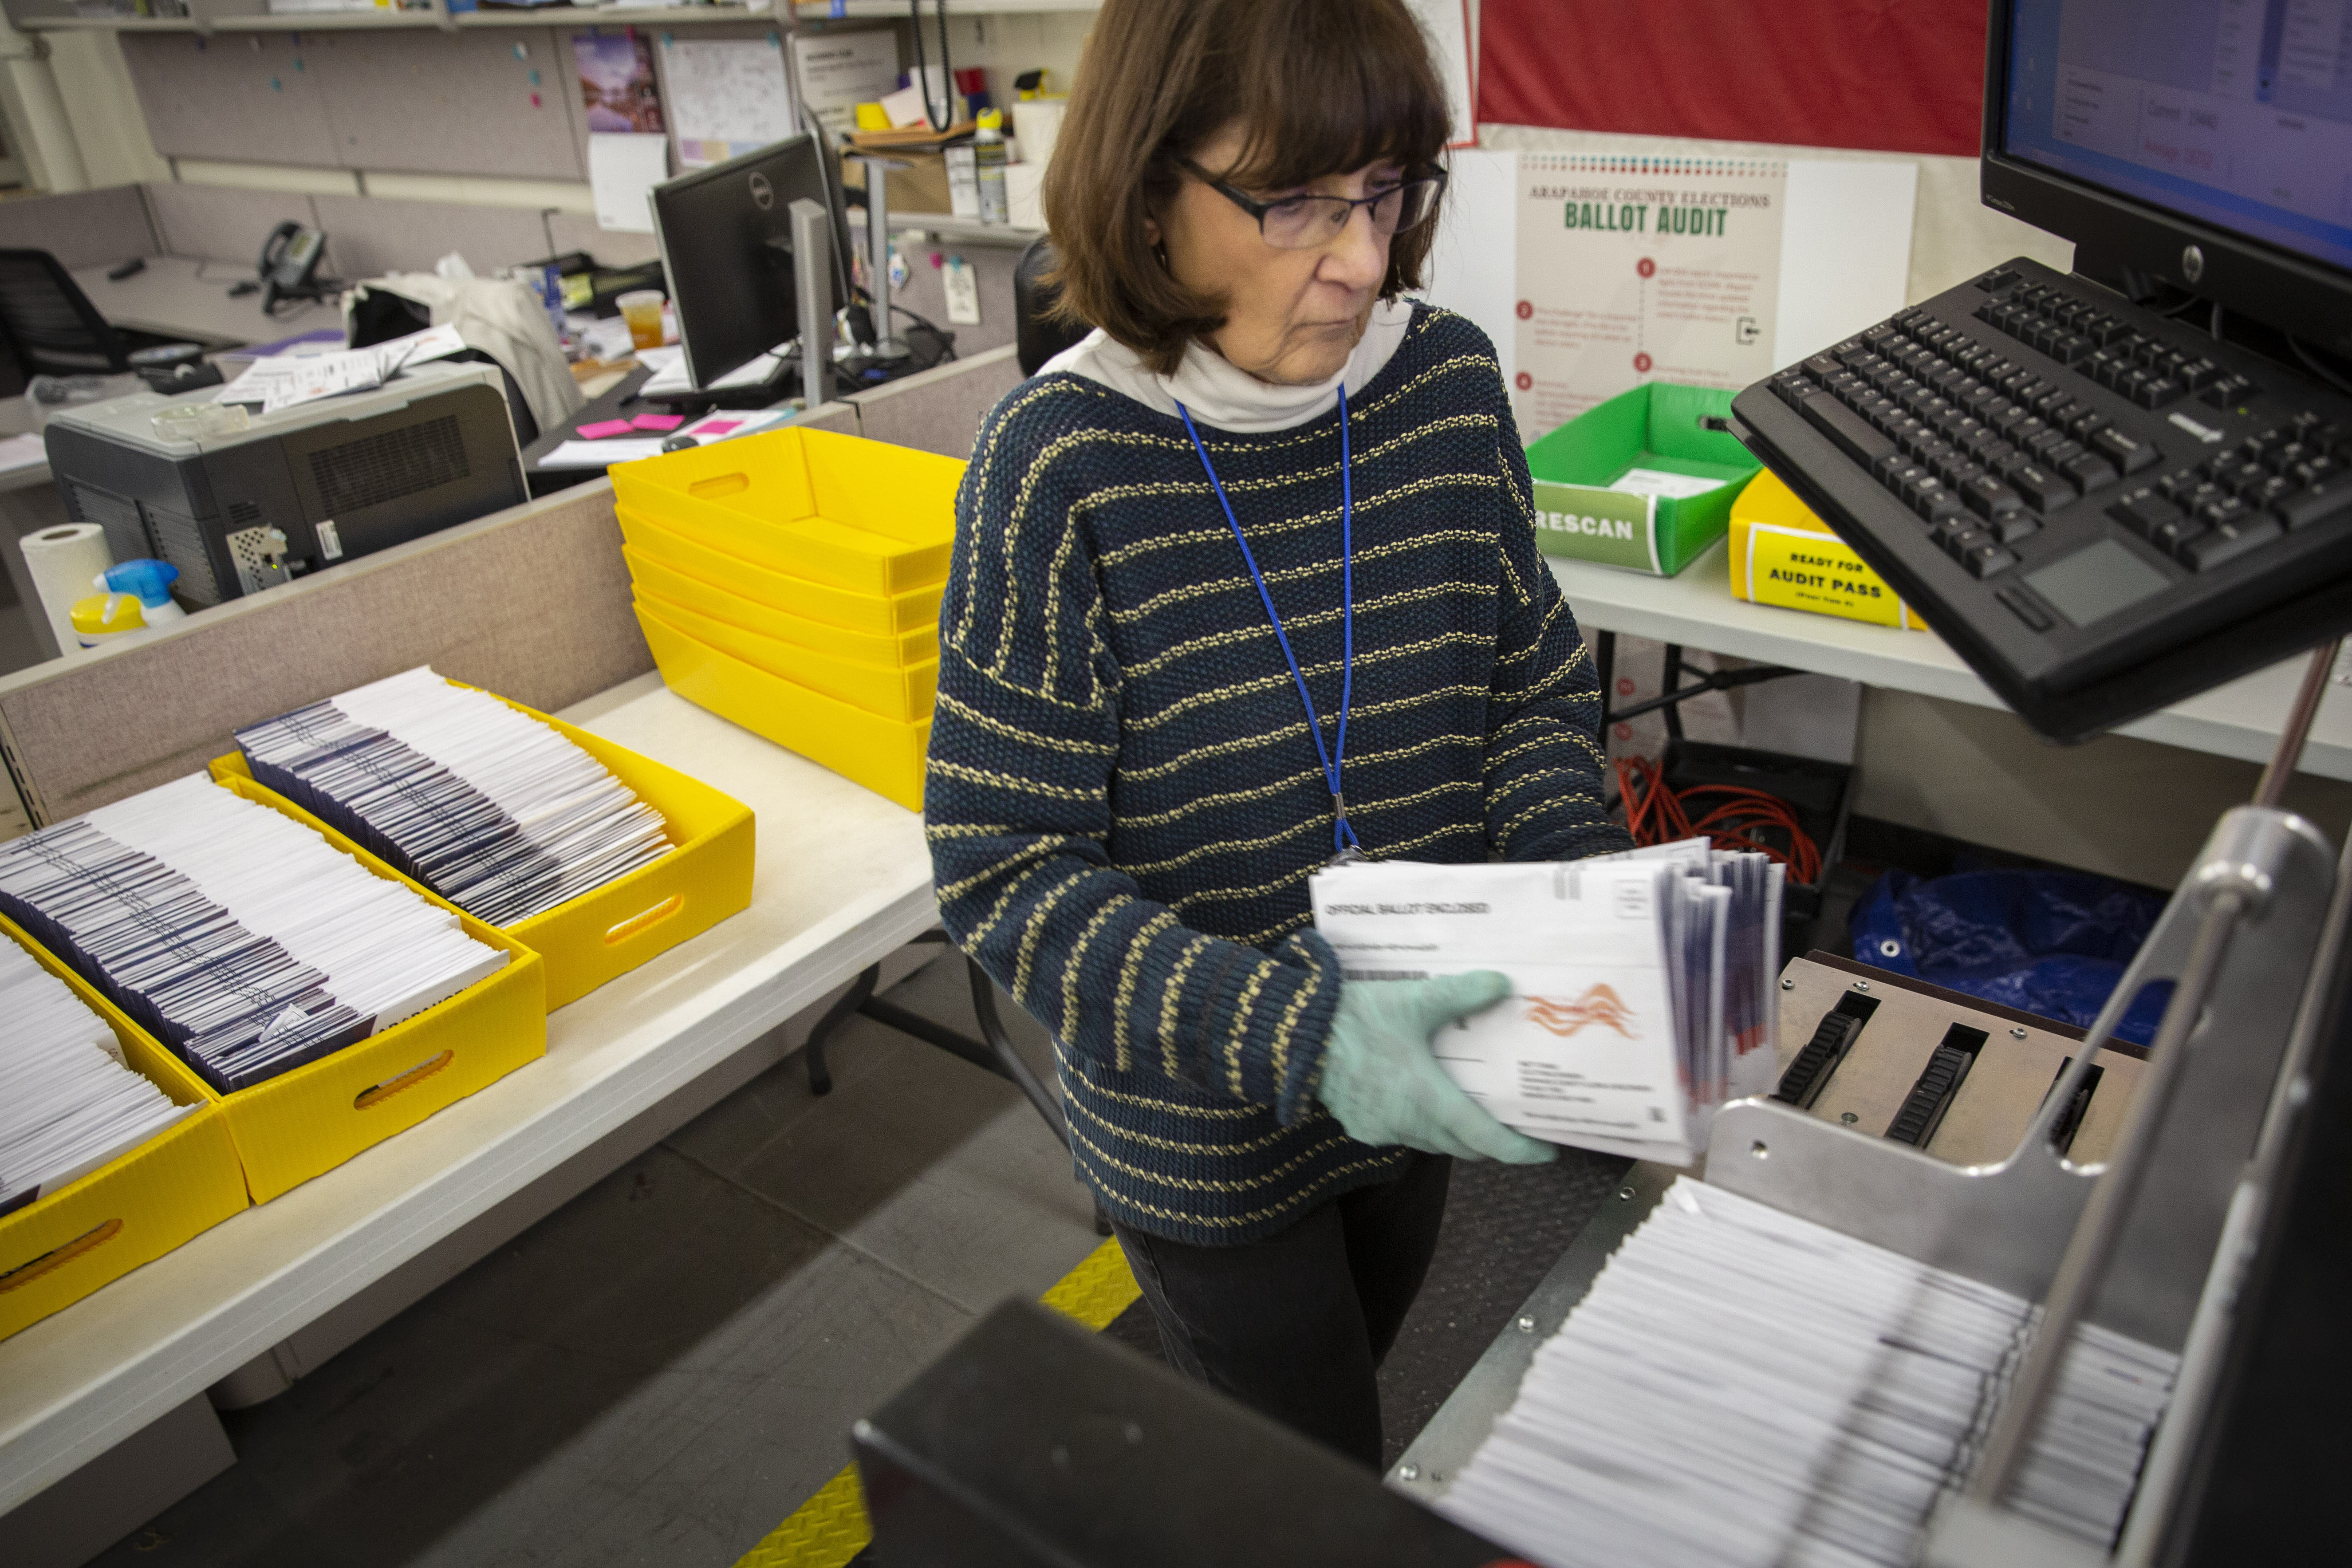 Marleen Cohen of Aurora loads ballots into a sorting machine at the Arapahoe County Elections Facility in Littleton, Colorado, Tuesday, Oct. 30, 2018.